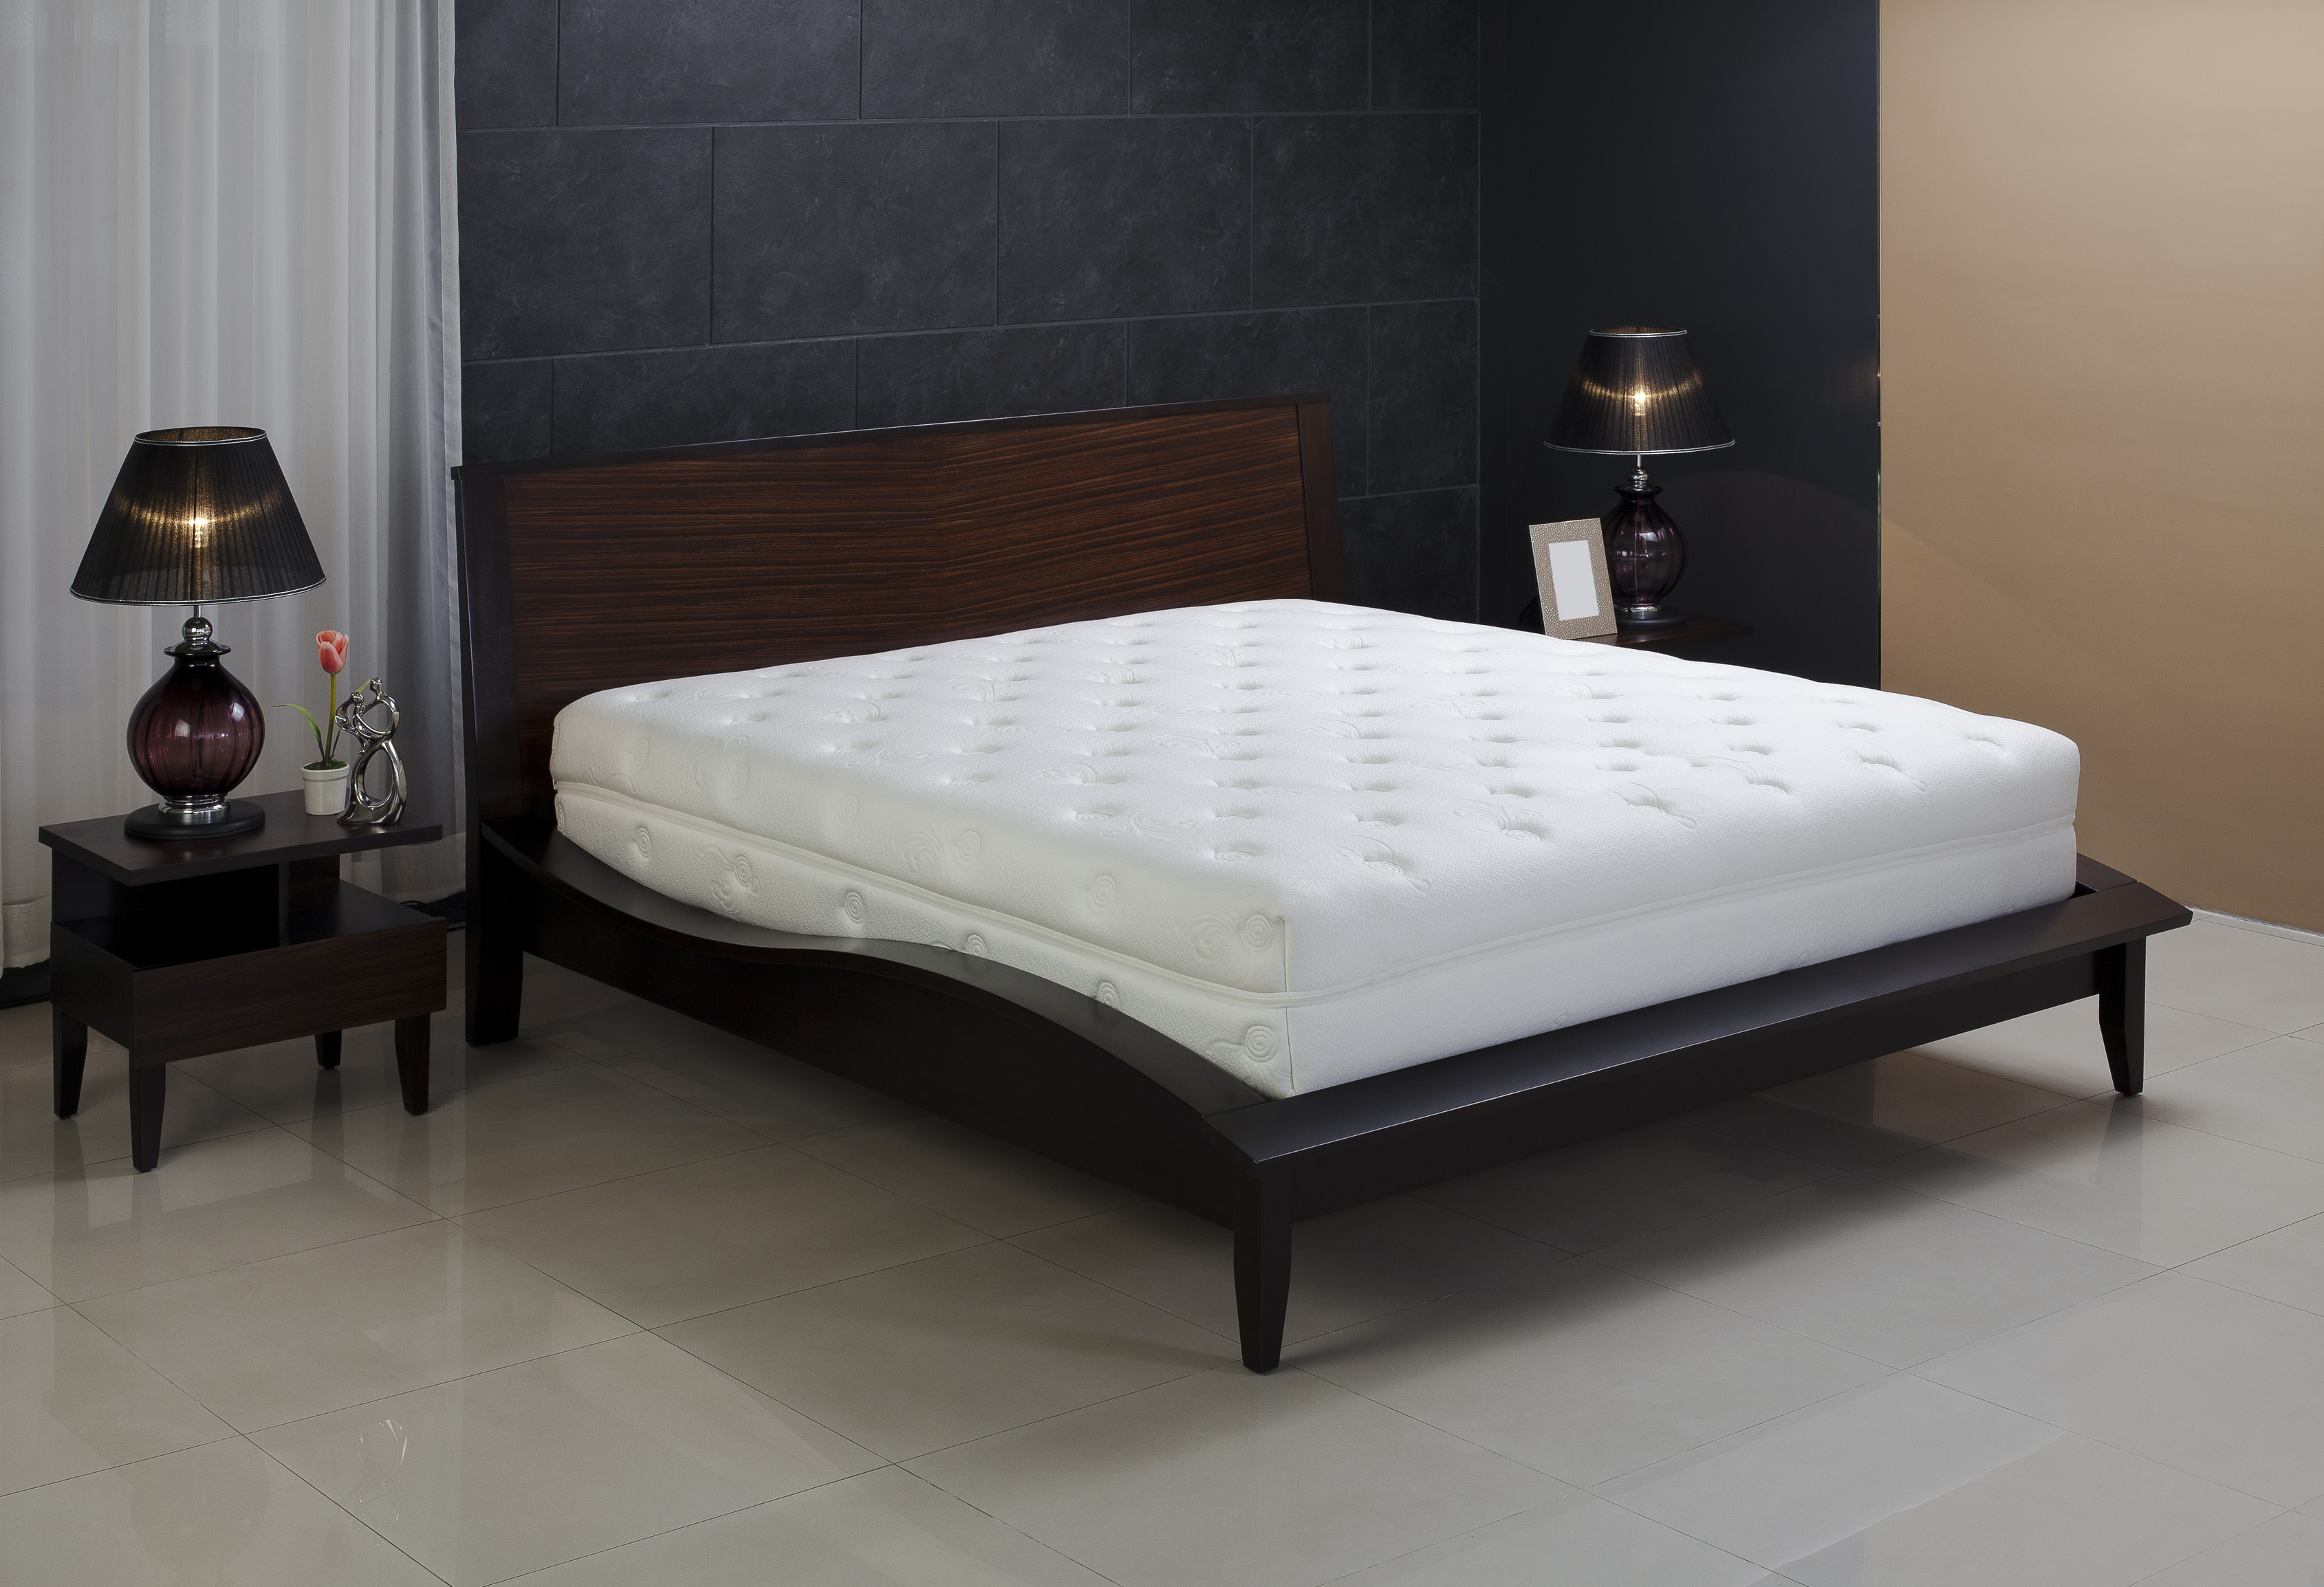 comment bien choisir son matelas le blog matelpro. Black Bedroom Furniture Sets. Home Design Ideas